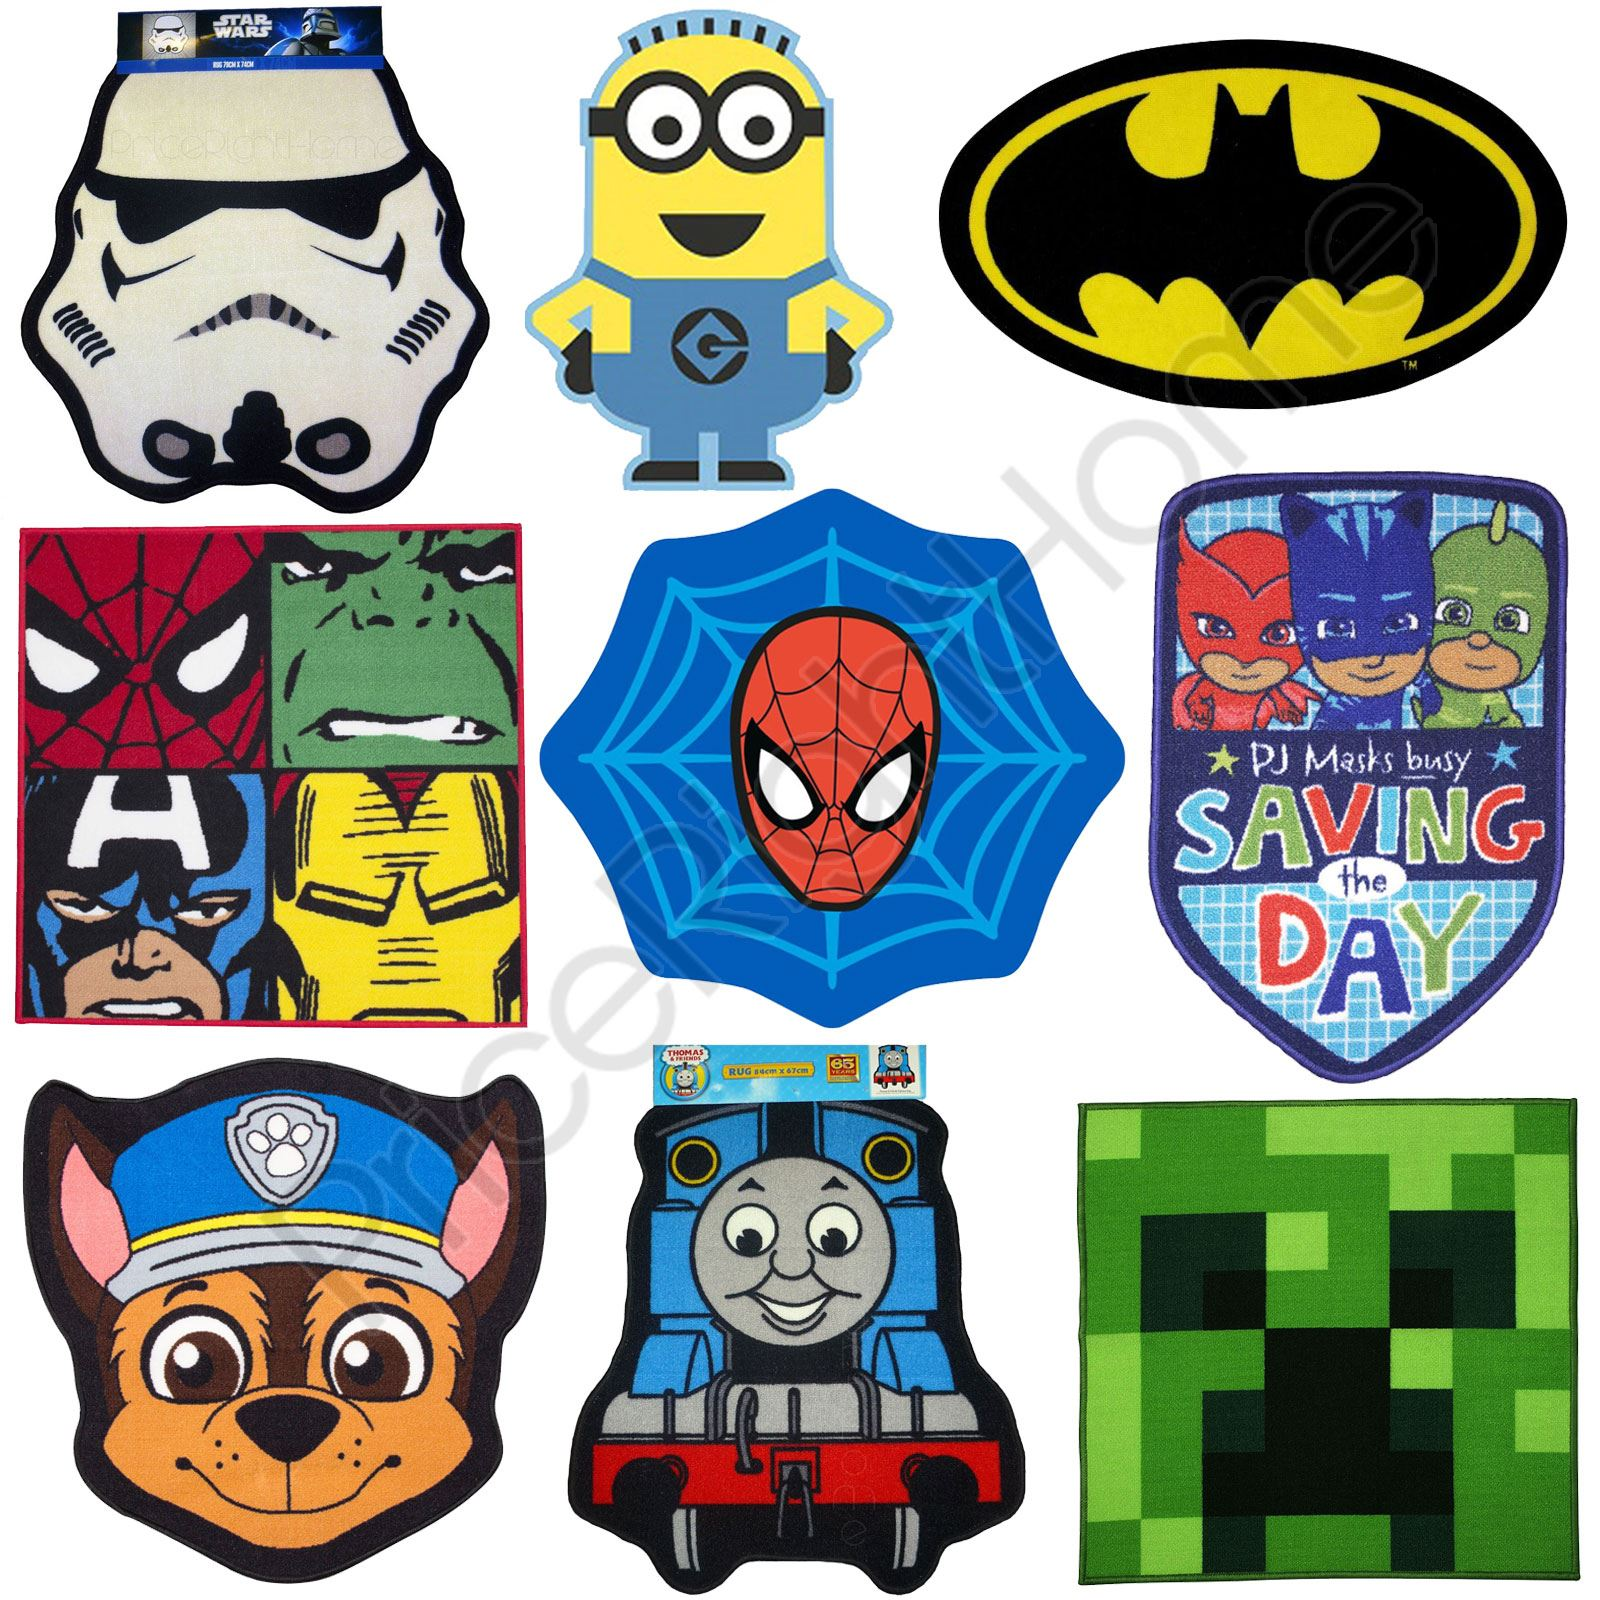 Boys bedroom character rugs star wars minions batman more 100 official